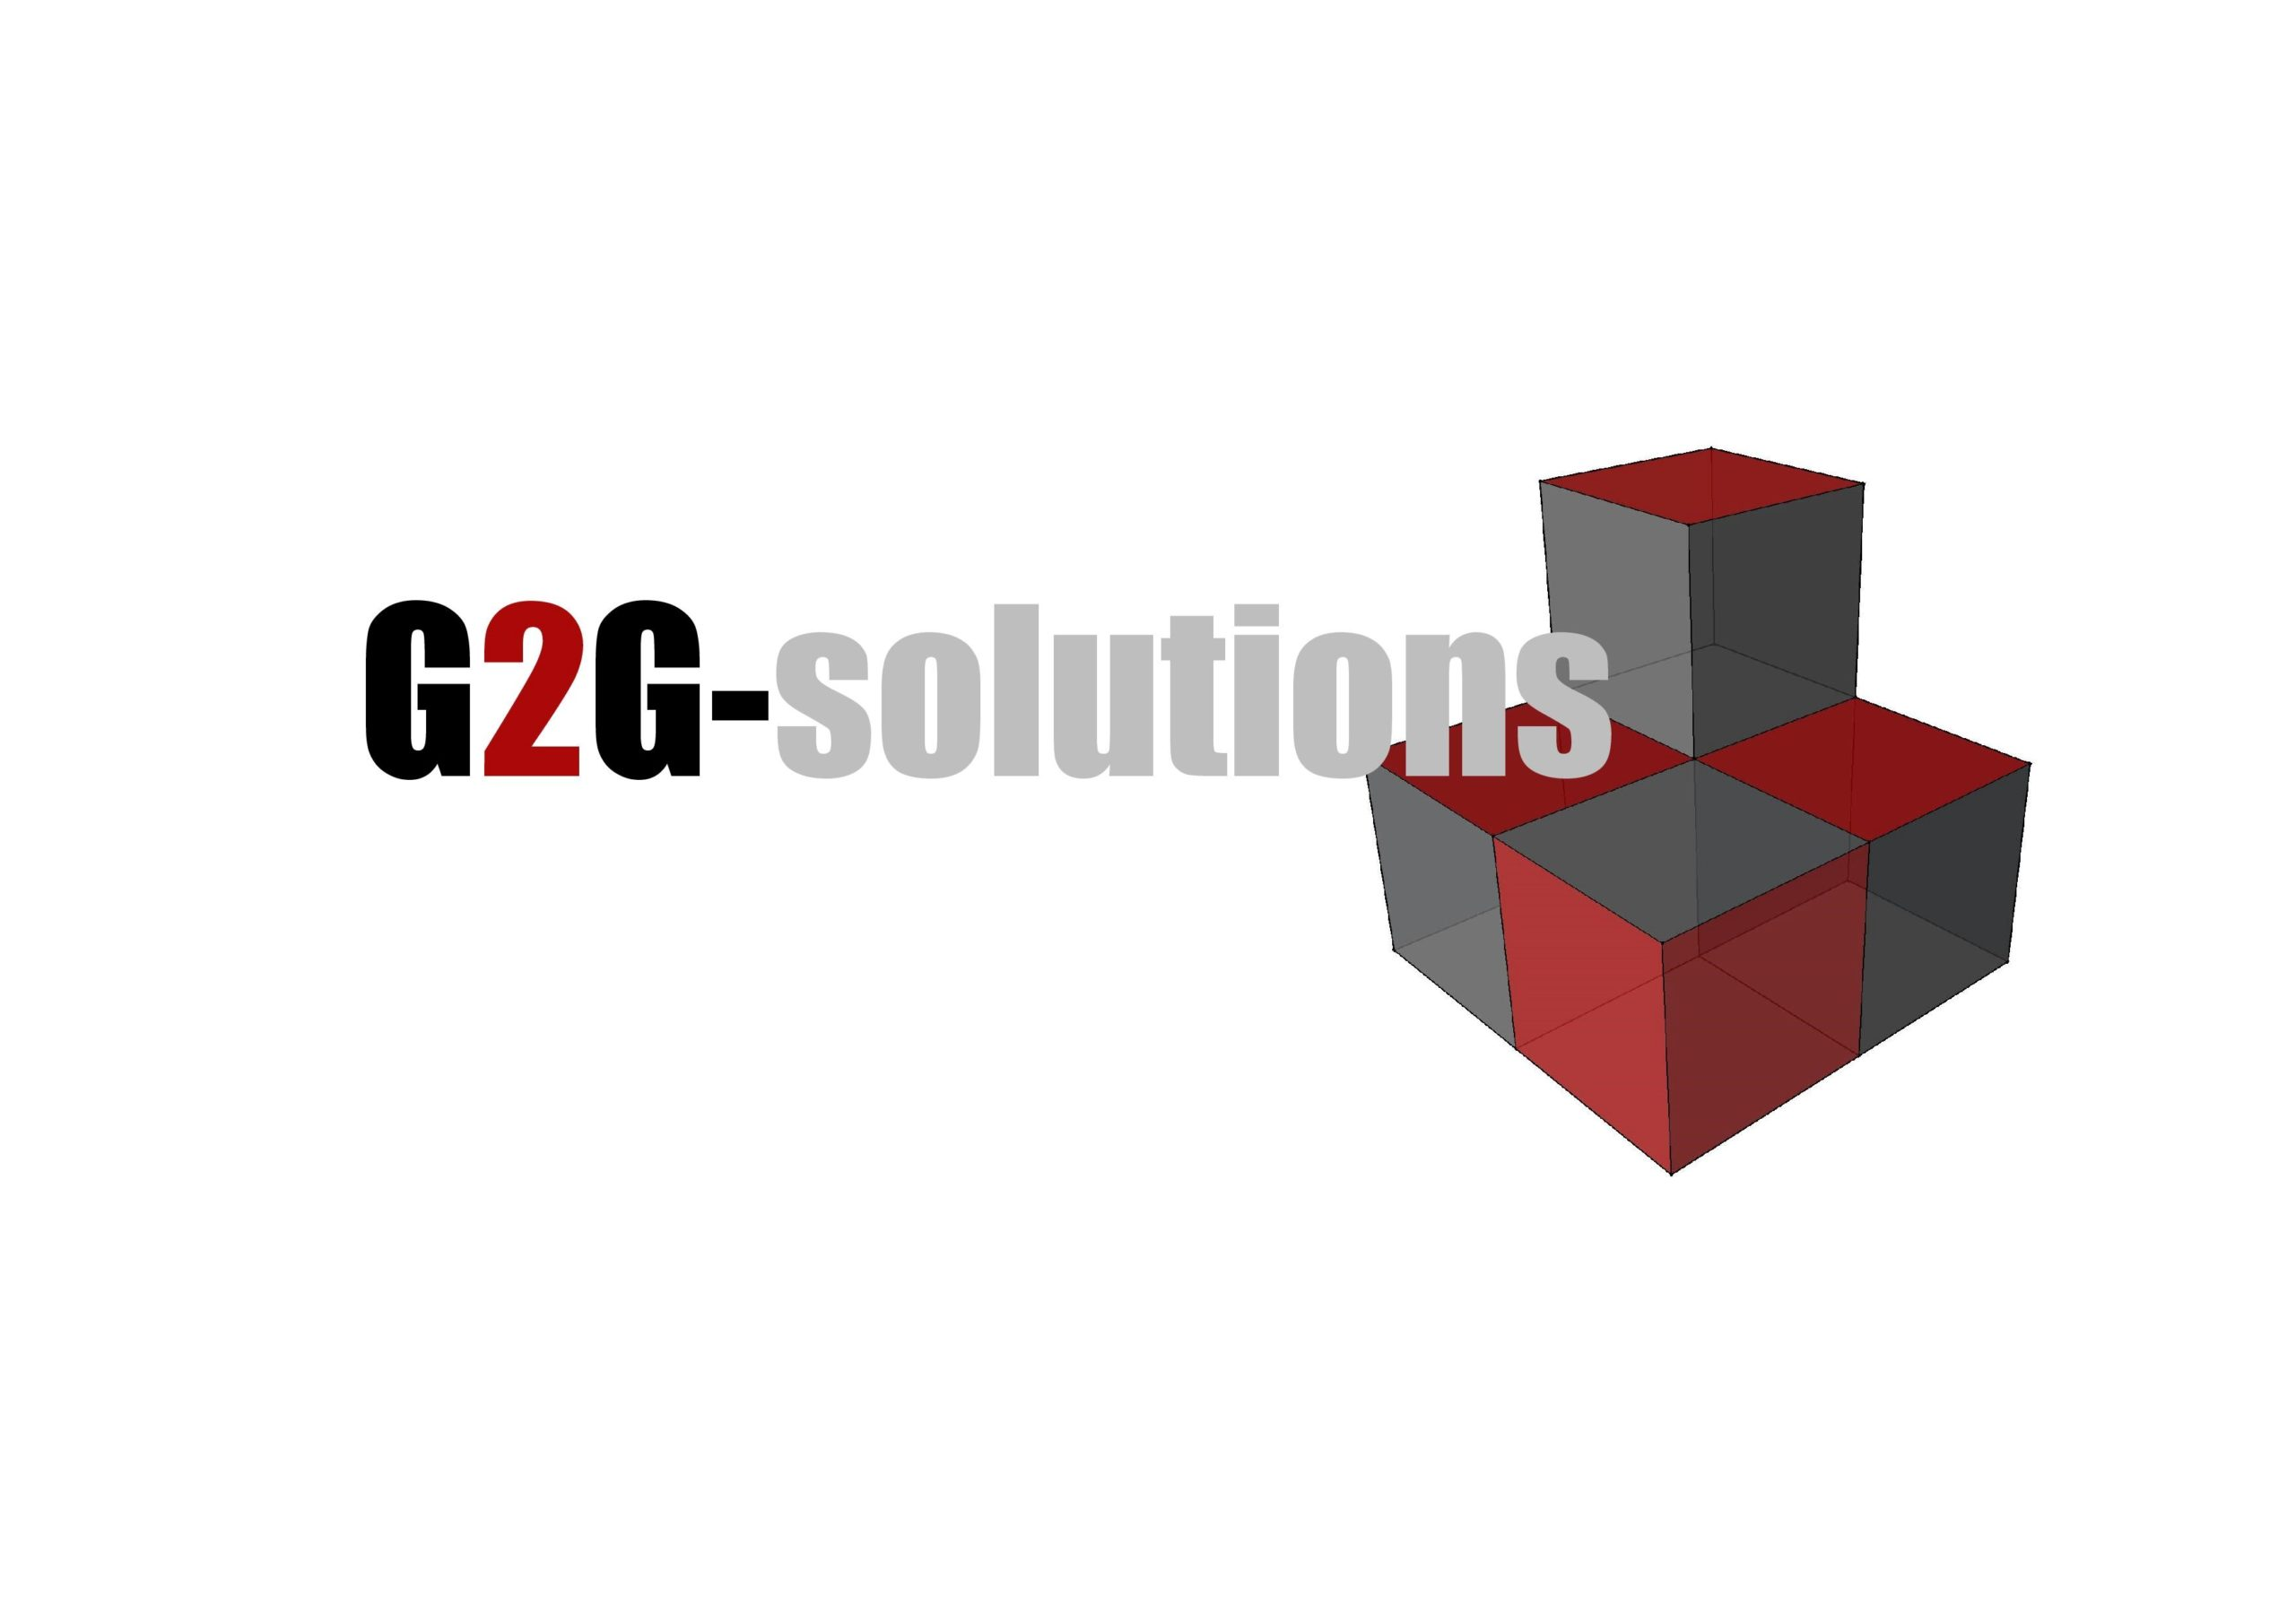 G2G – solutions